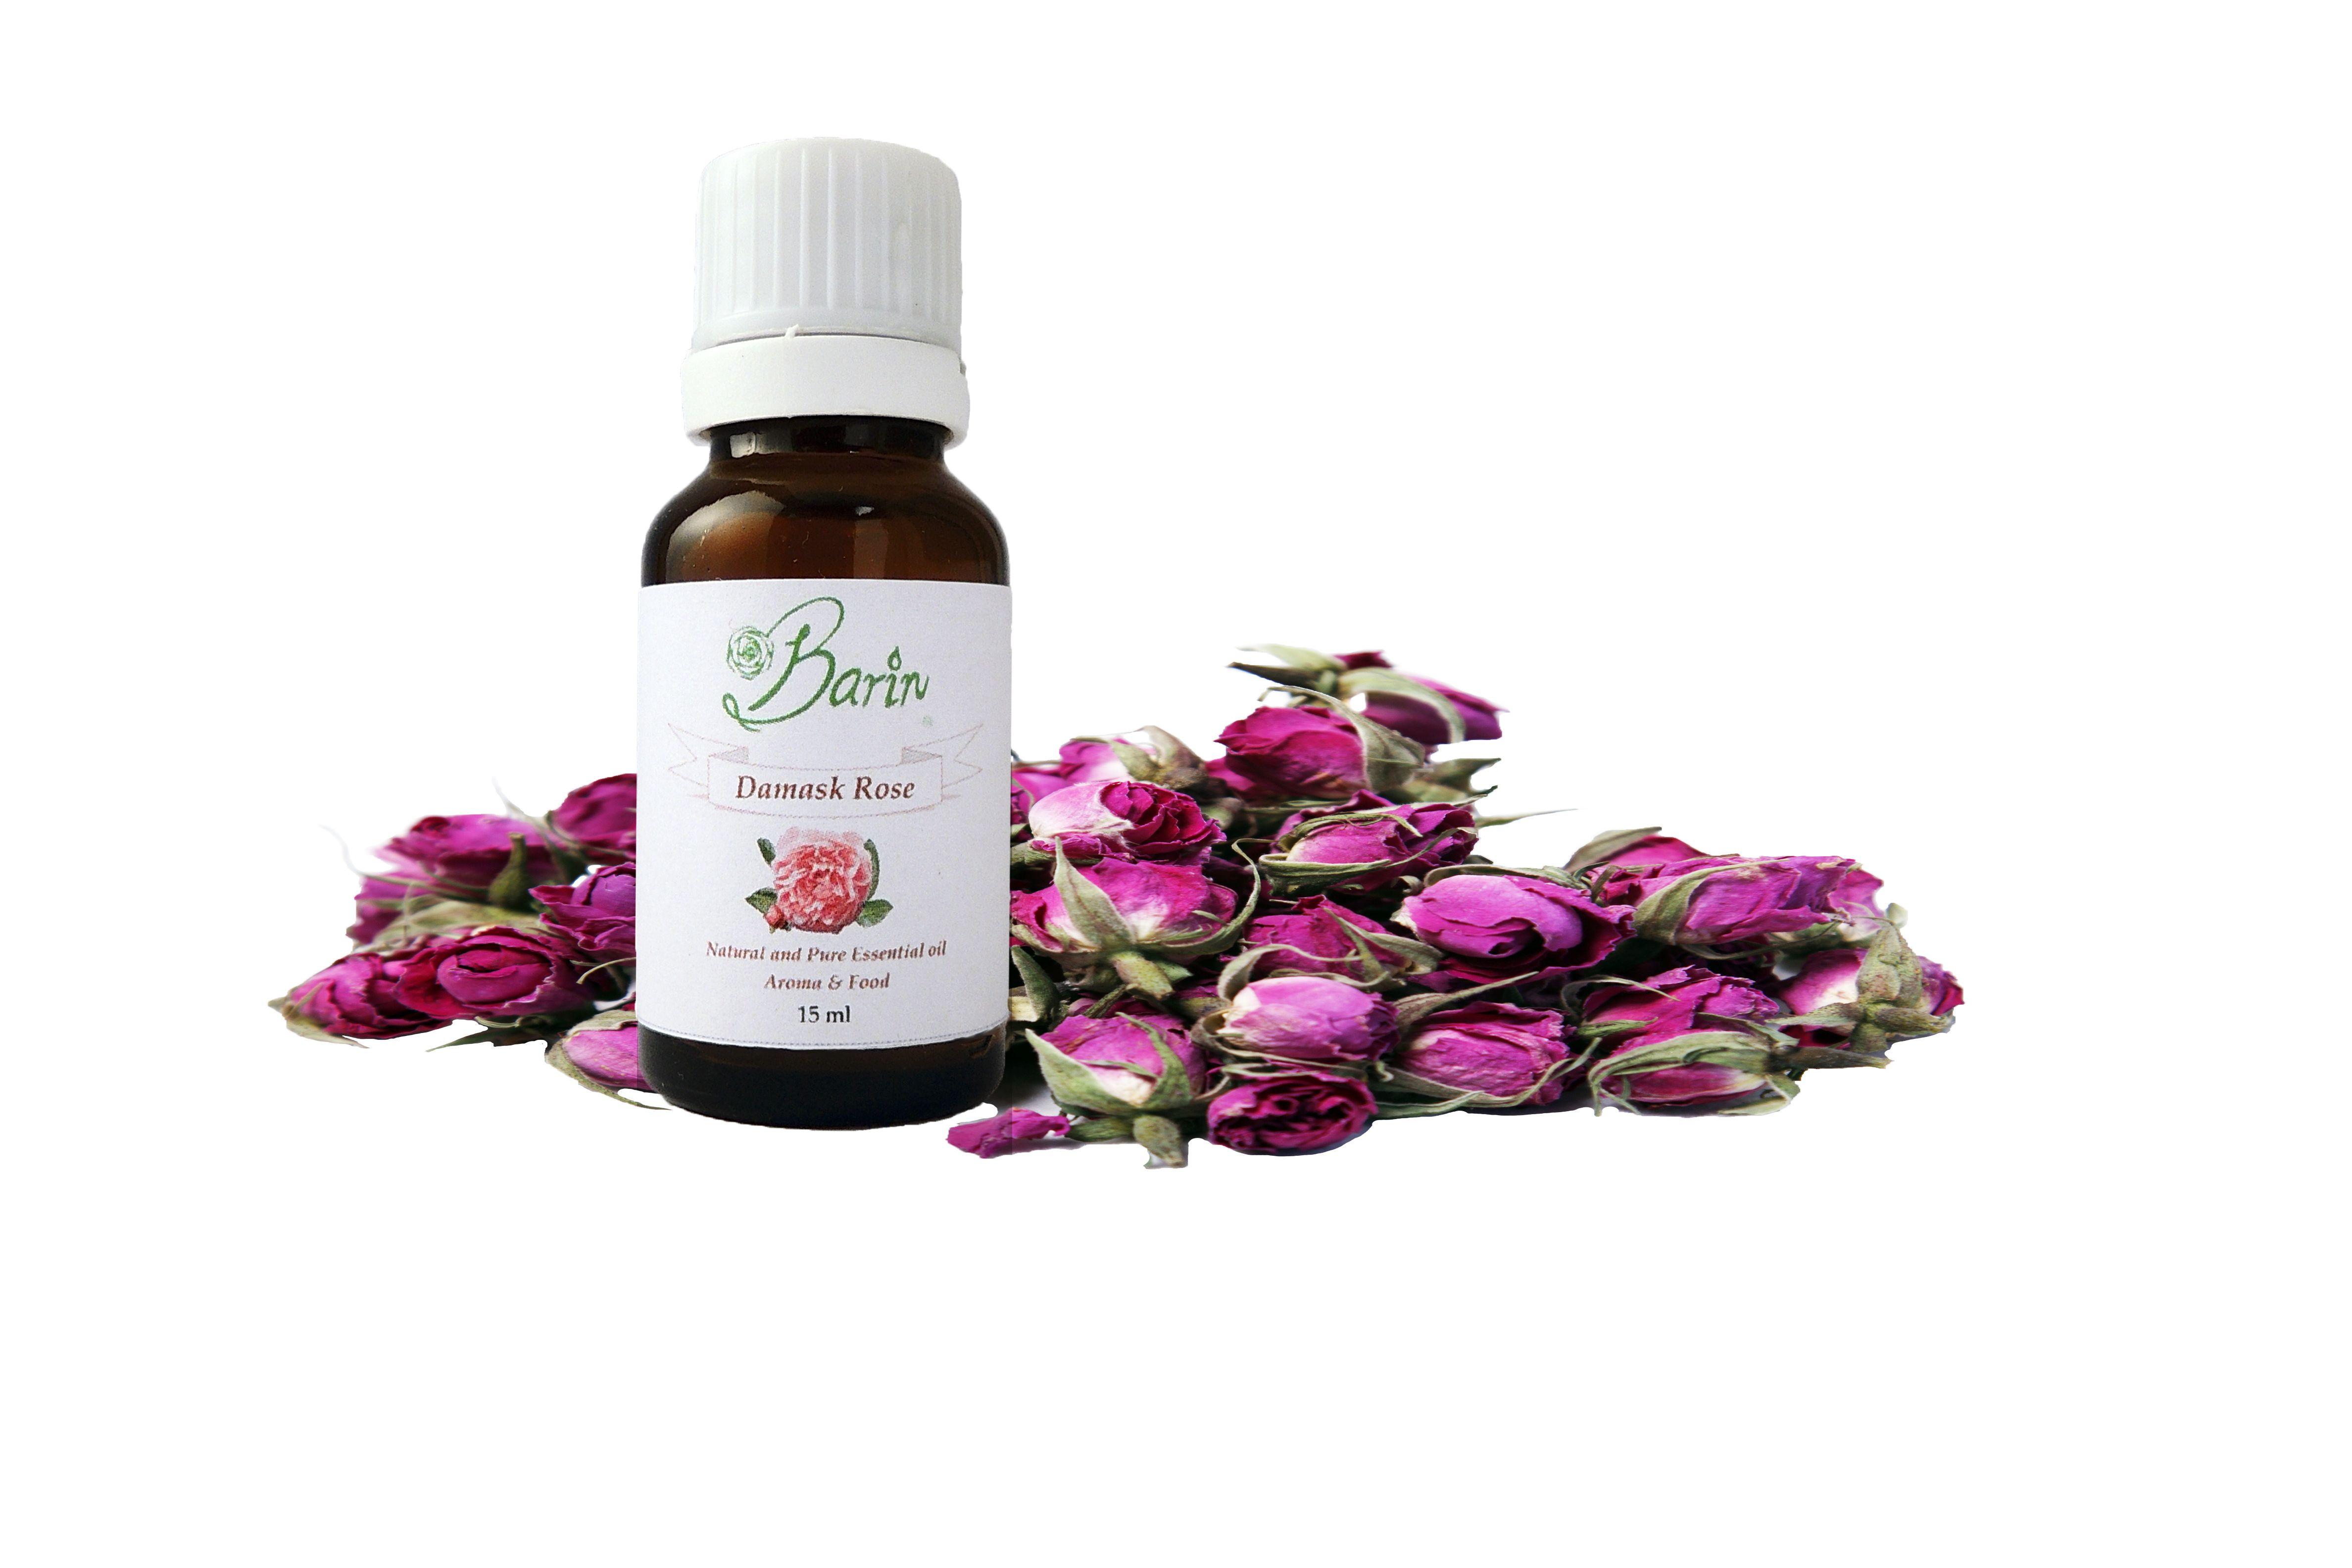 Natural Herbal Plants' Essential Oils and Extracts